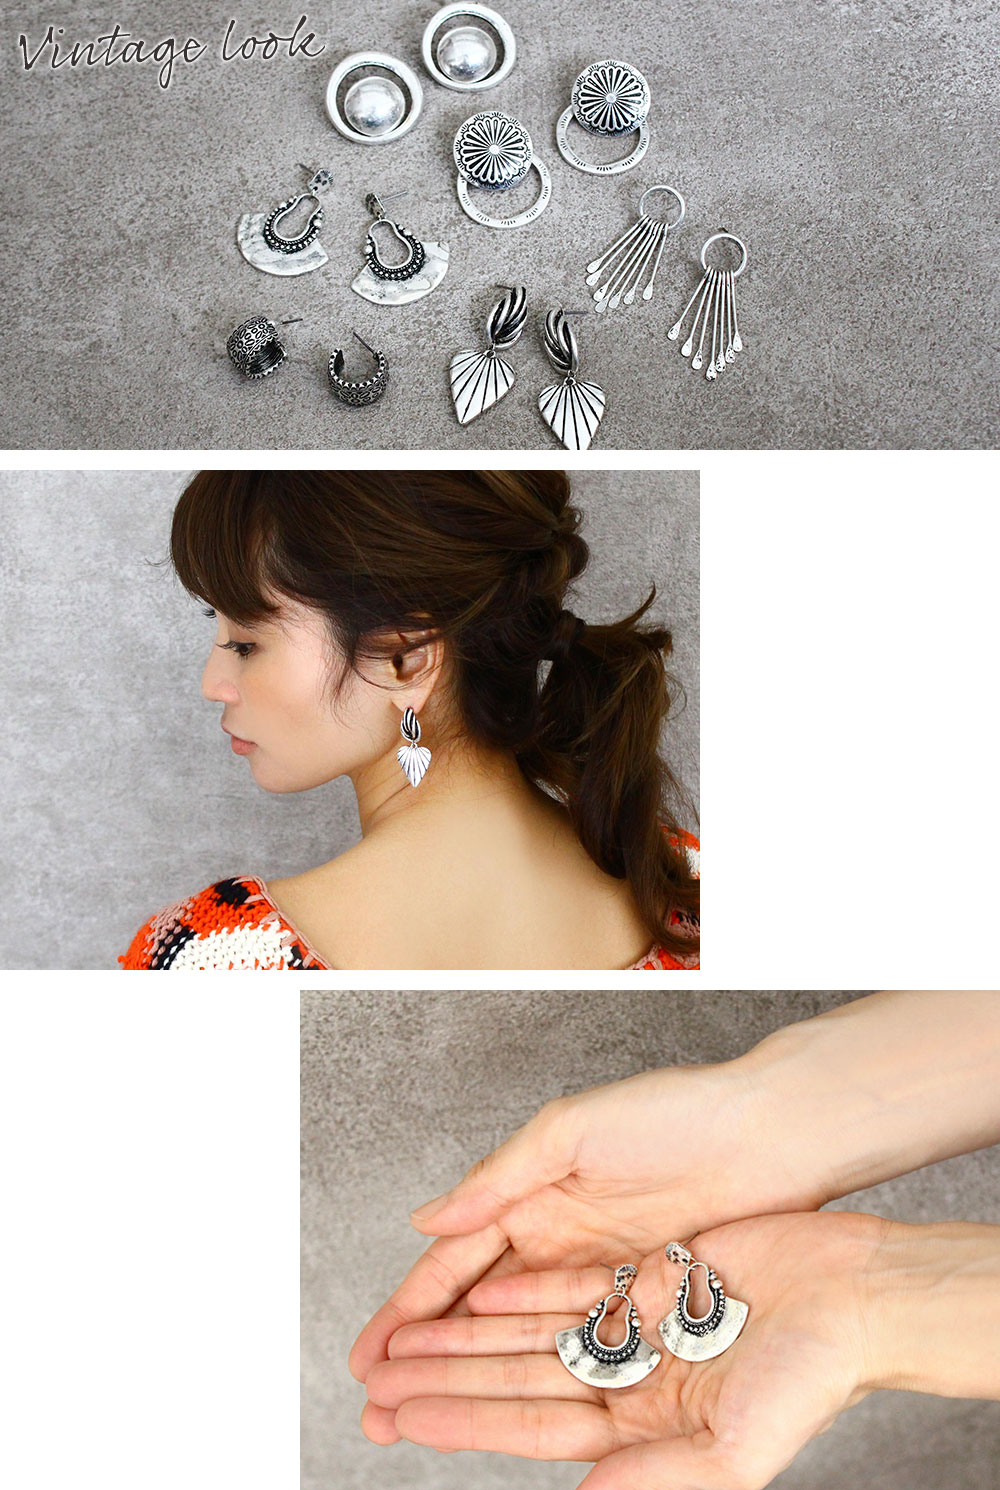 LIMITED NUMBER PIERCE UP TO 5CM